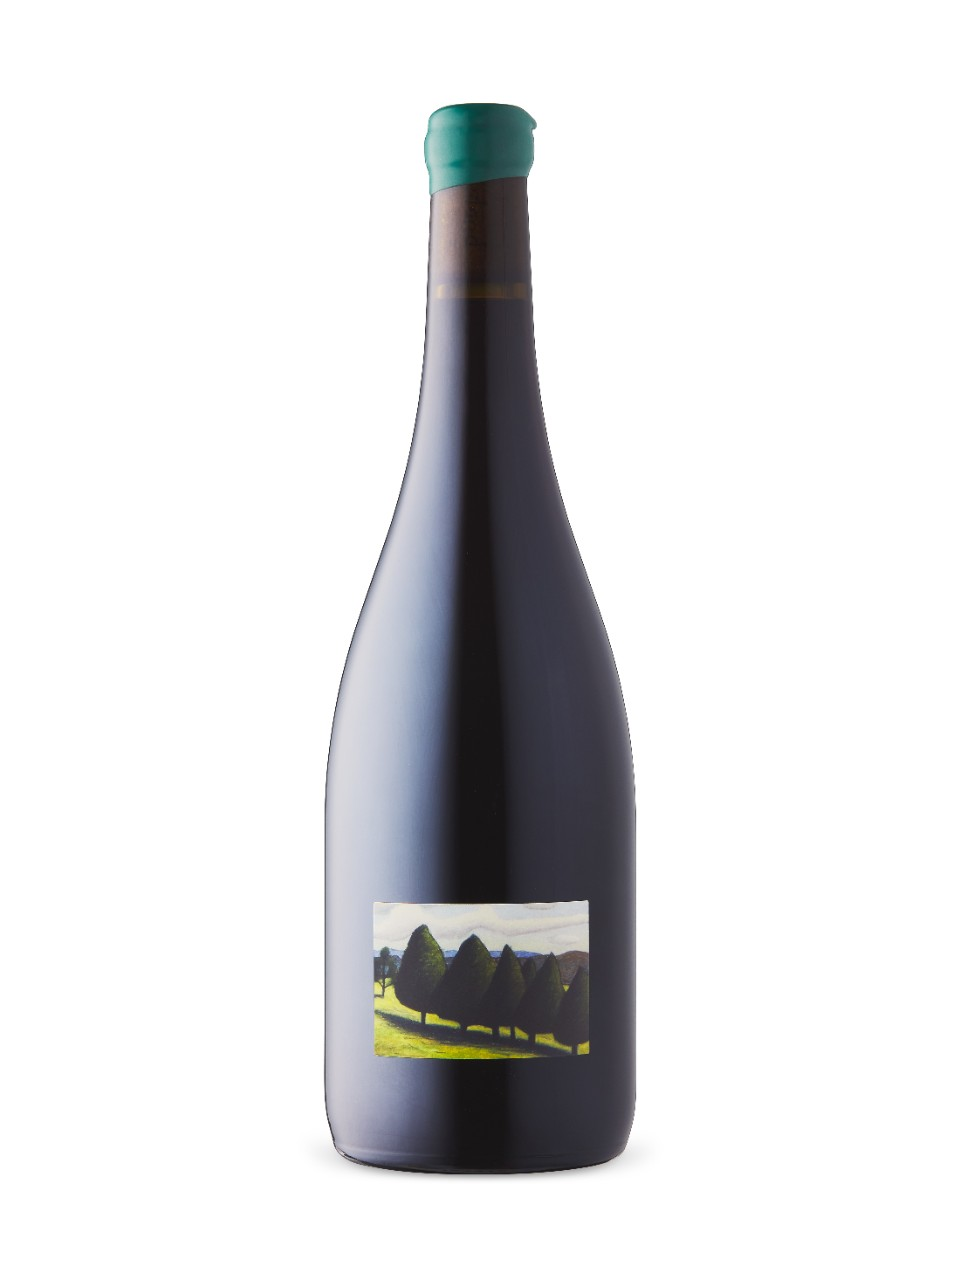 William Downie Gippsland Pinot Noir 2019 from LCBO